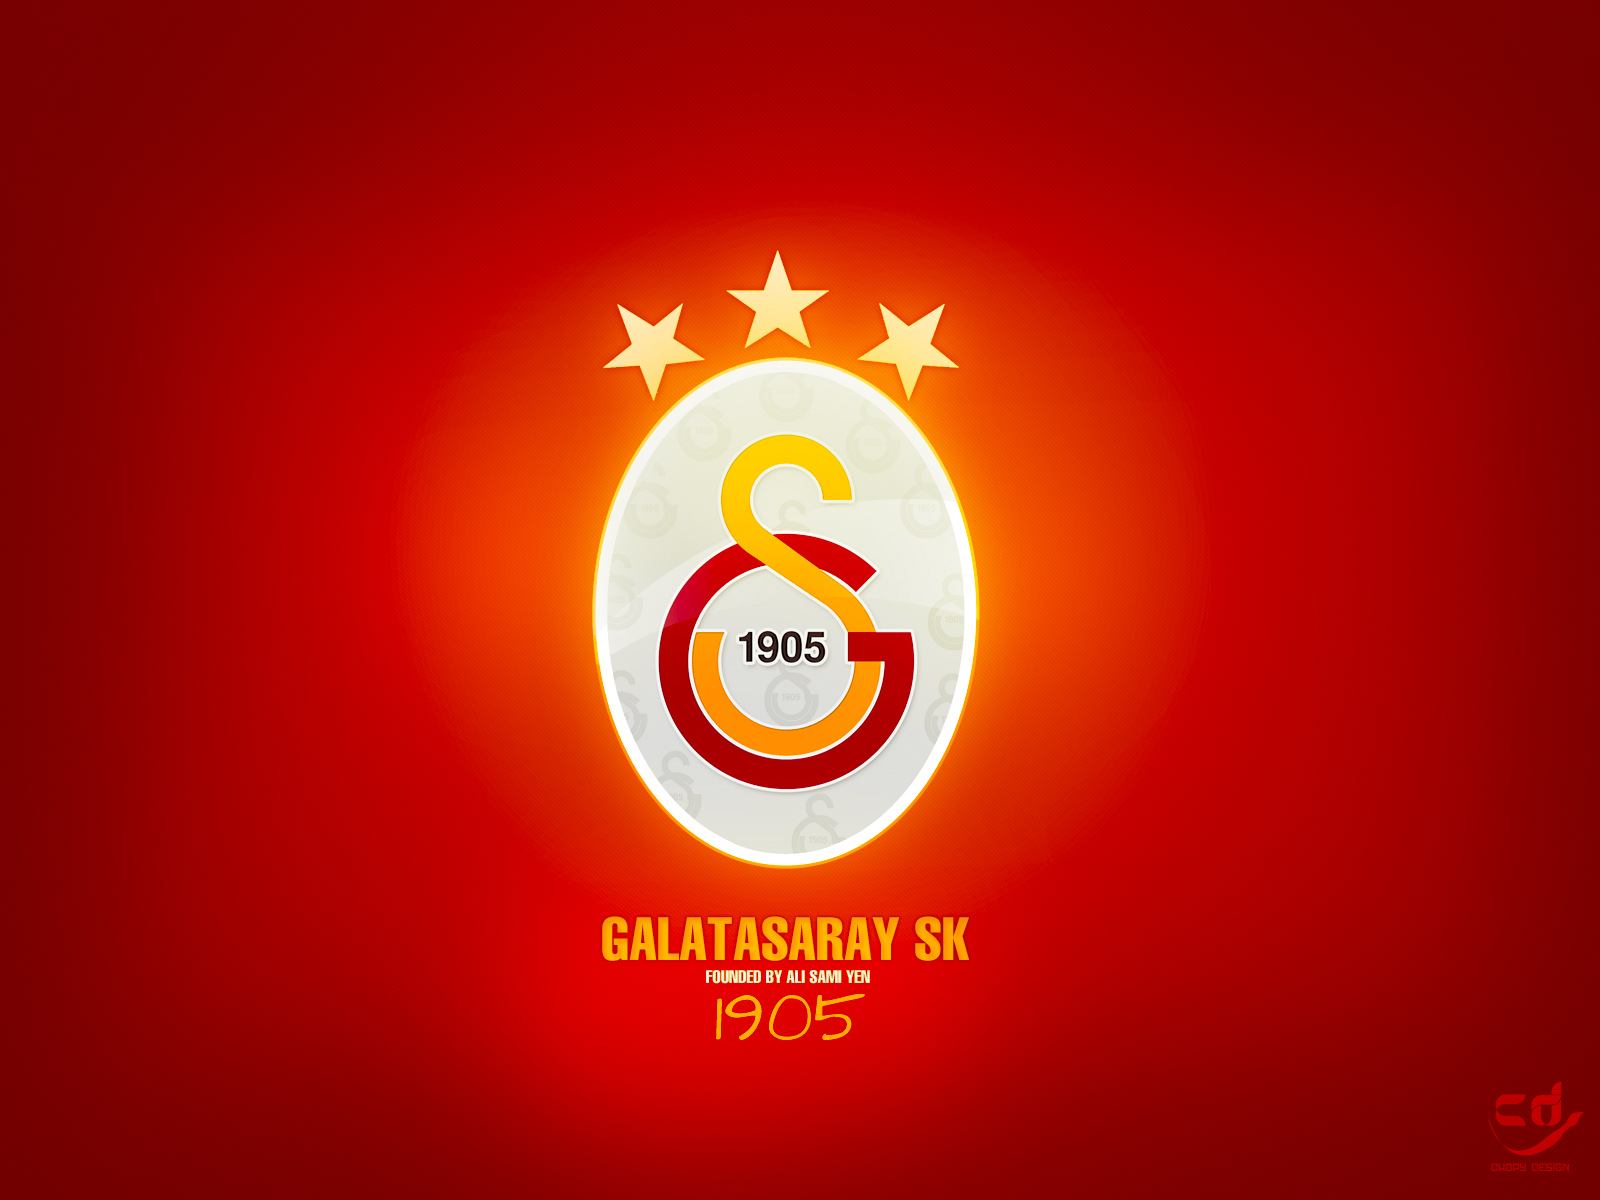 http://fc09.deviantart.net/fs70/f/2011/194/a/2/galatasaray_wallpaper_by_chopydesign-d3pcq09.jpg